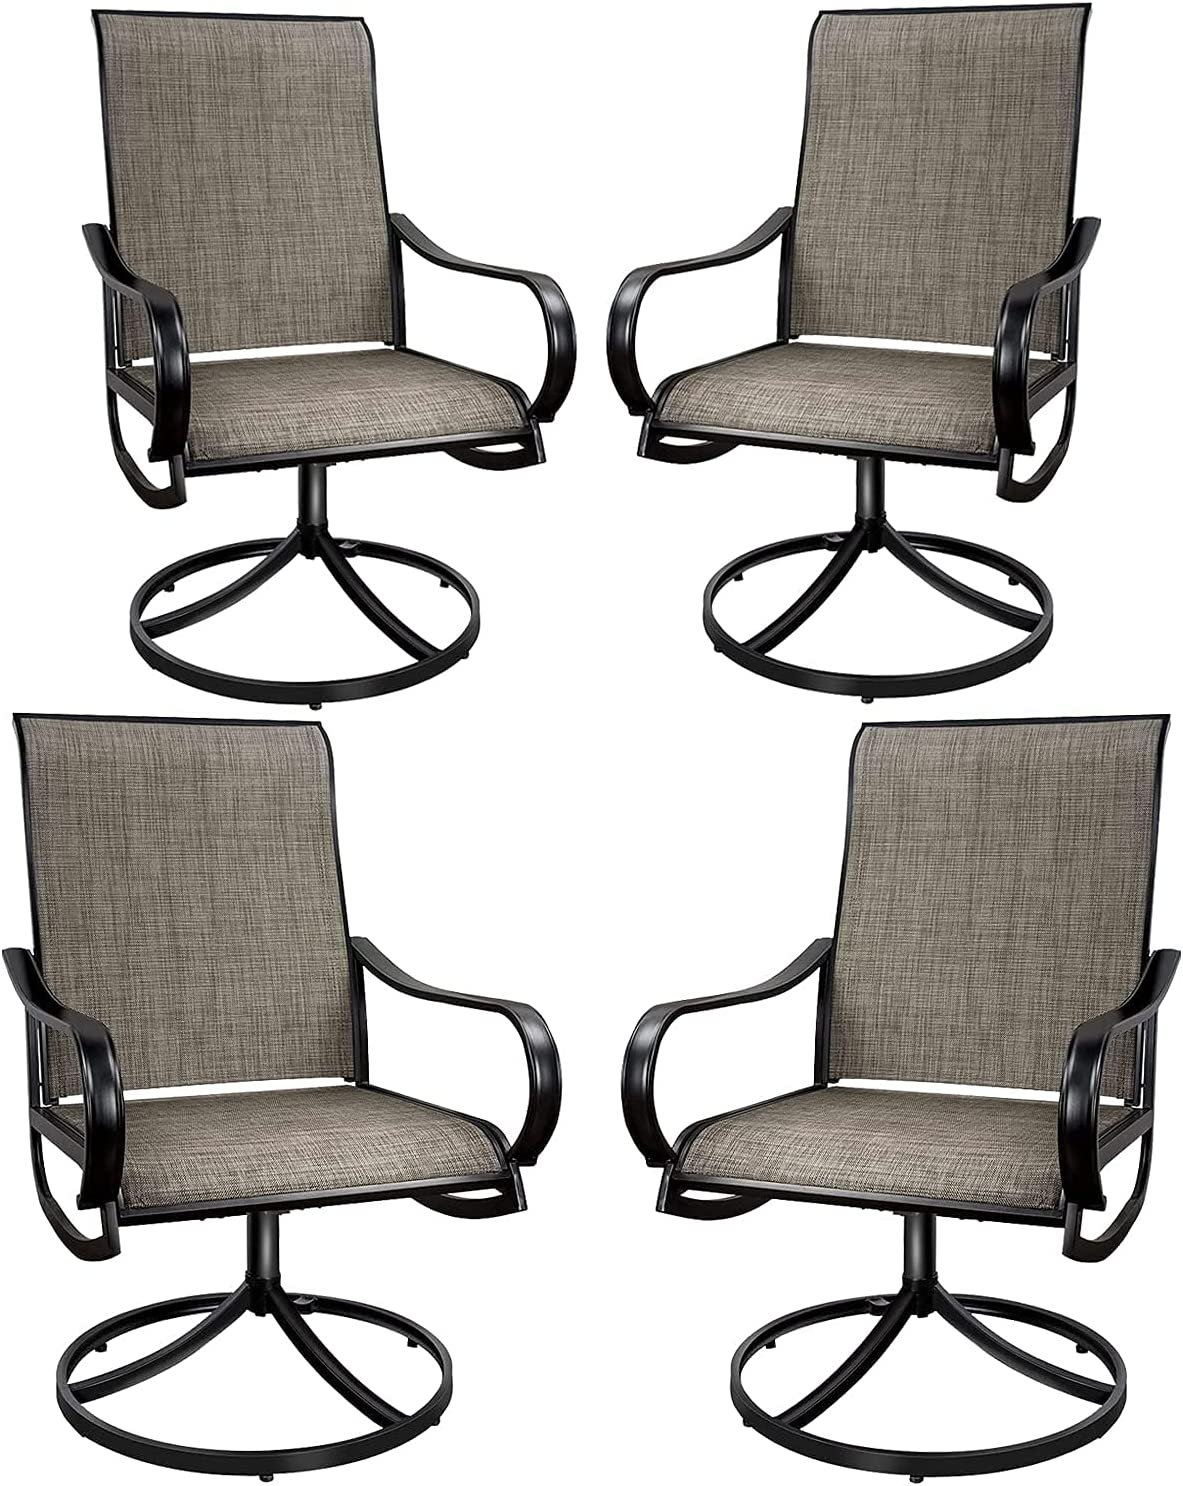 MEOOEM Patio Dining Chairs 4PCS Max 82% OFF Outdoor Rocker Swivel Factory outlet wit